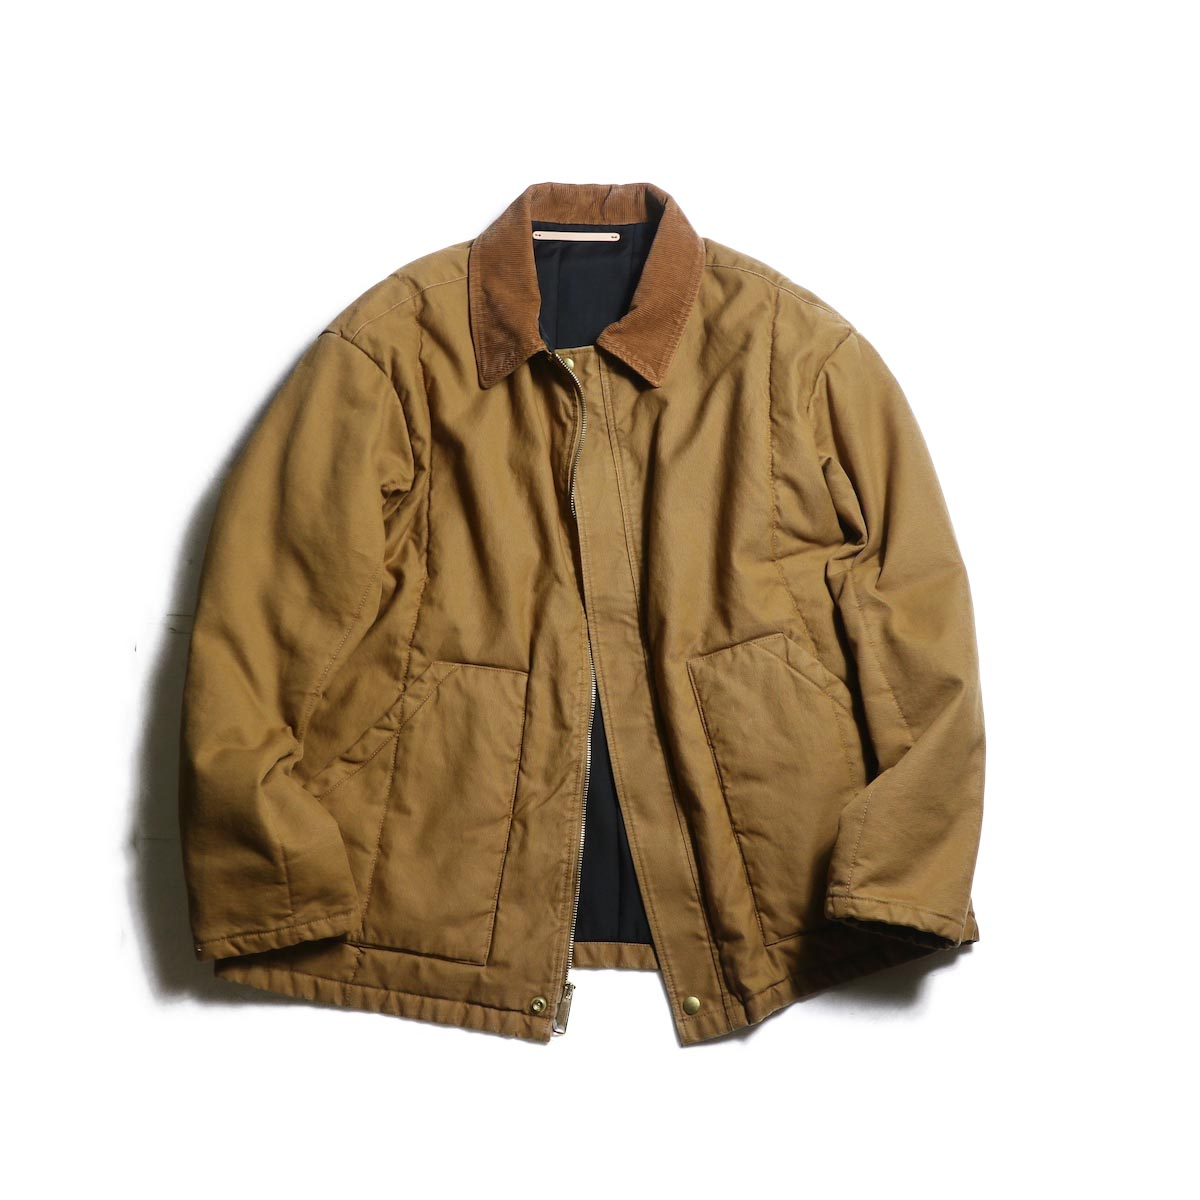 UNUSED / US1674 Duck Jacket (Brown)